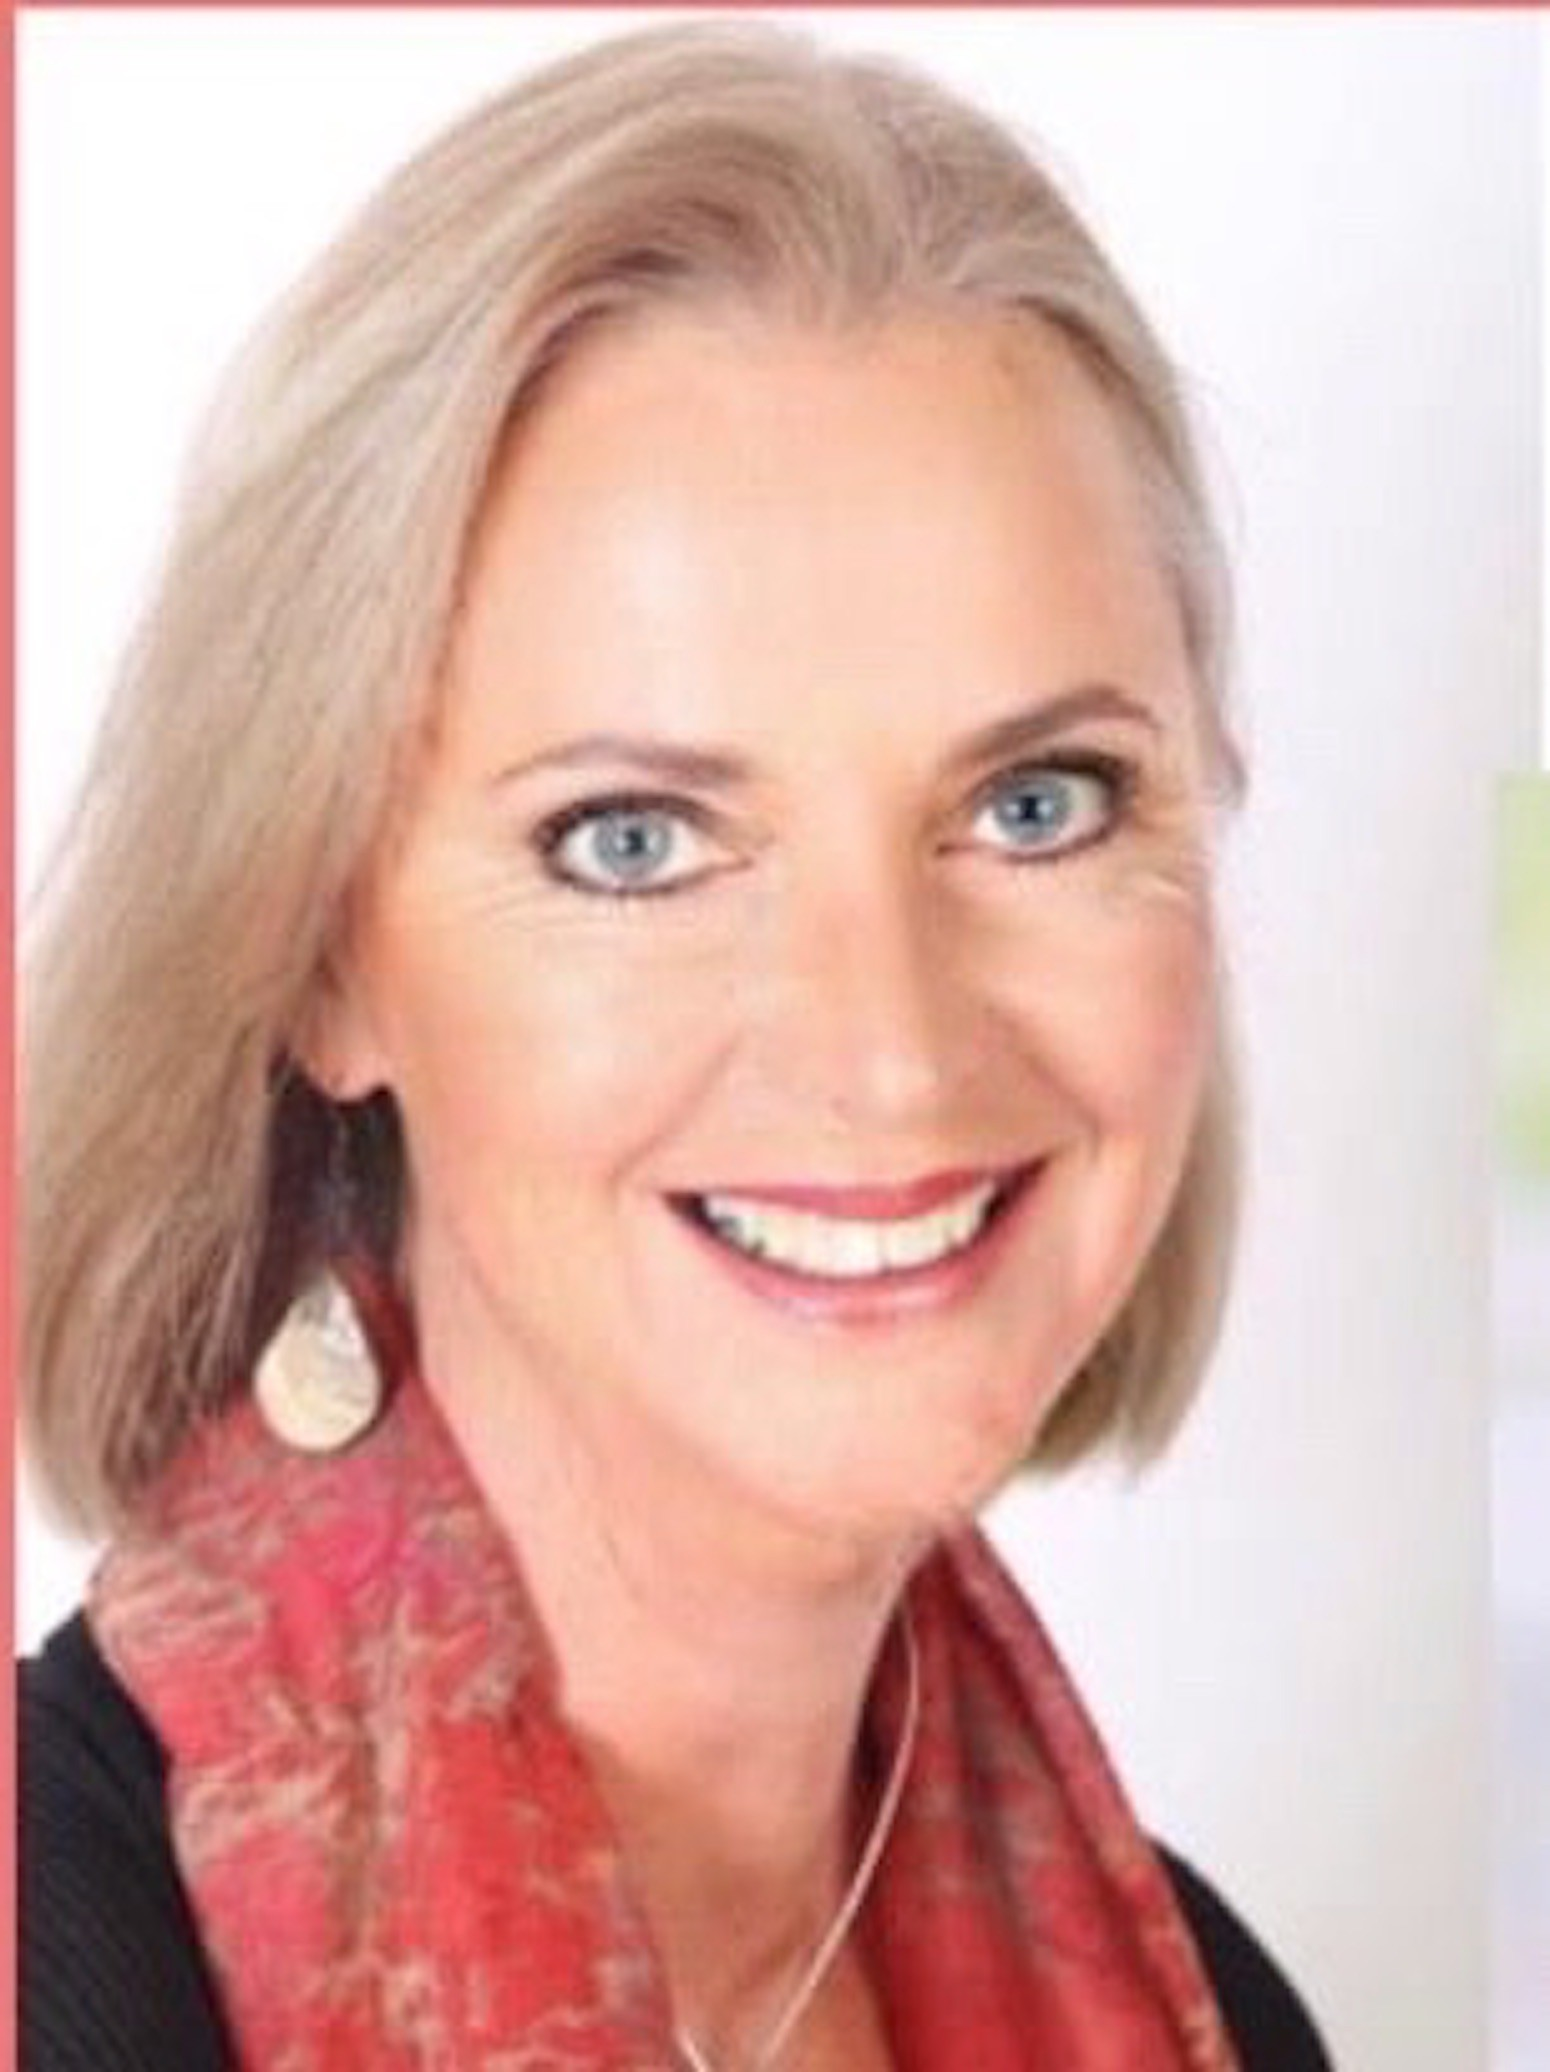 Danielle Aitken therapist on Natural Therapy Pages